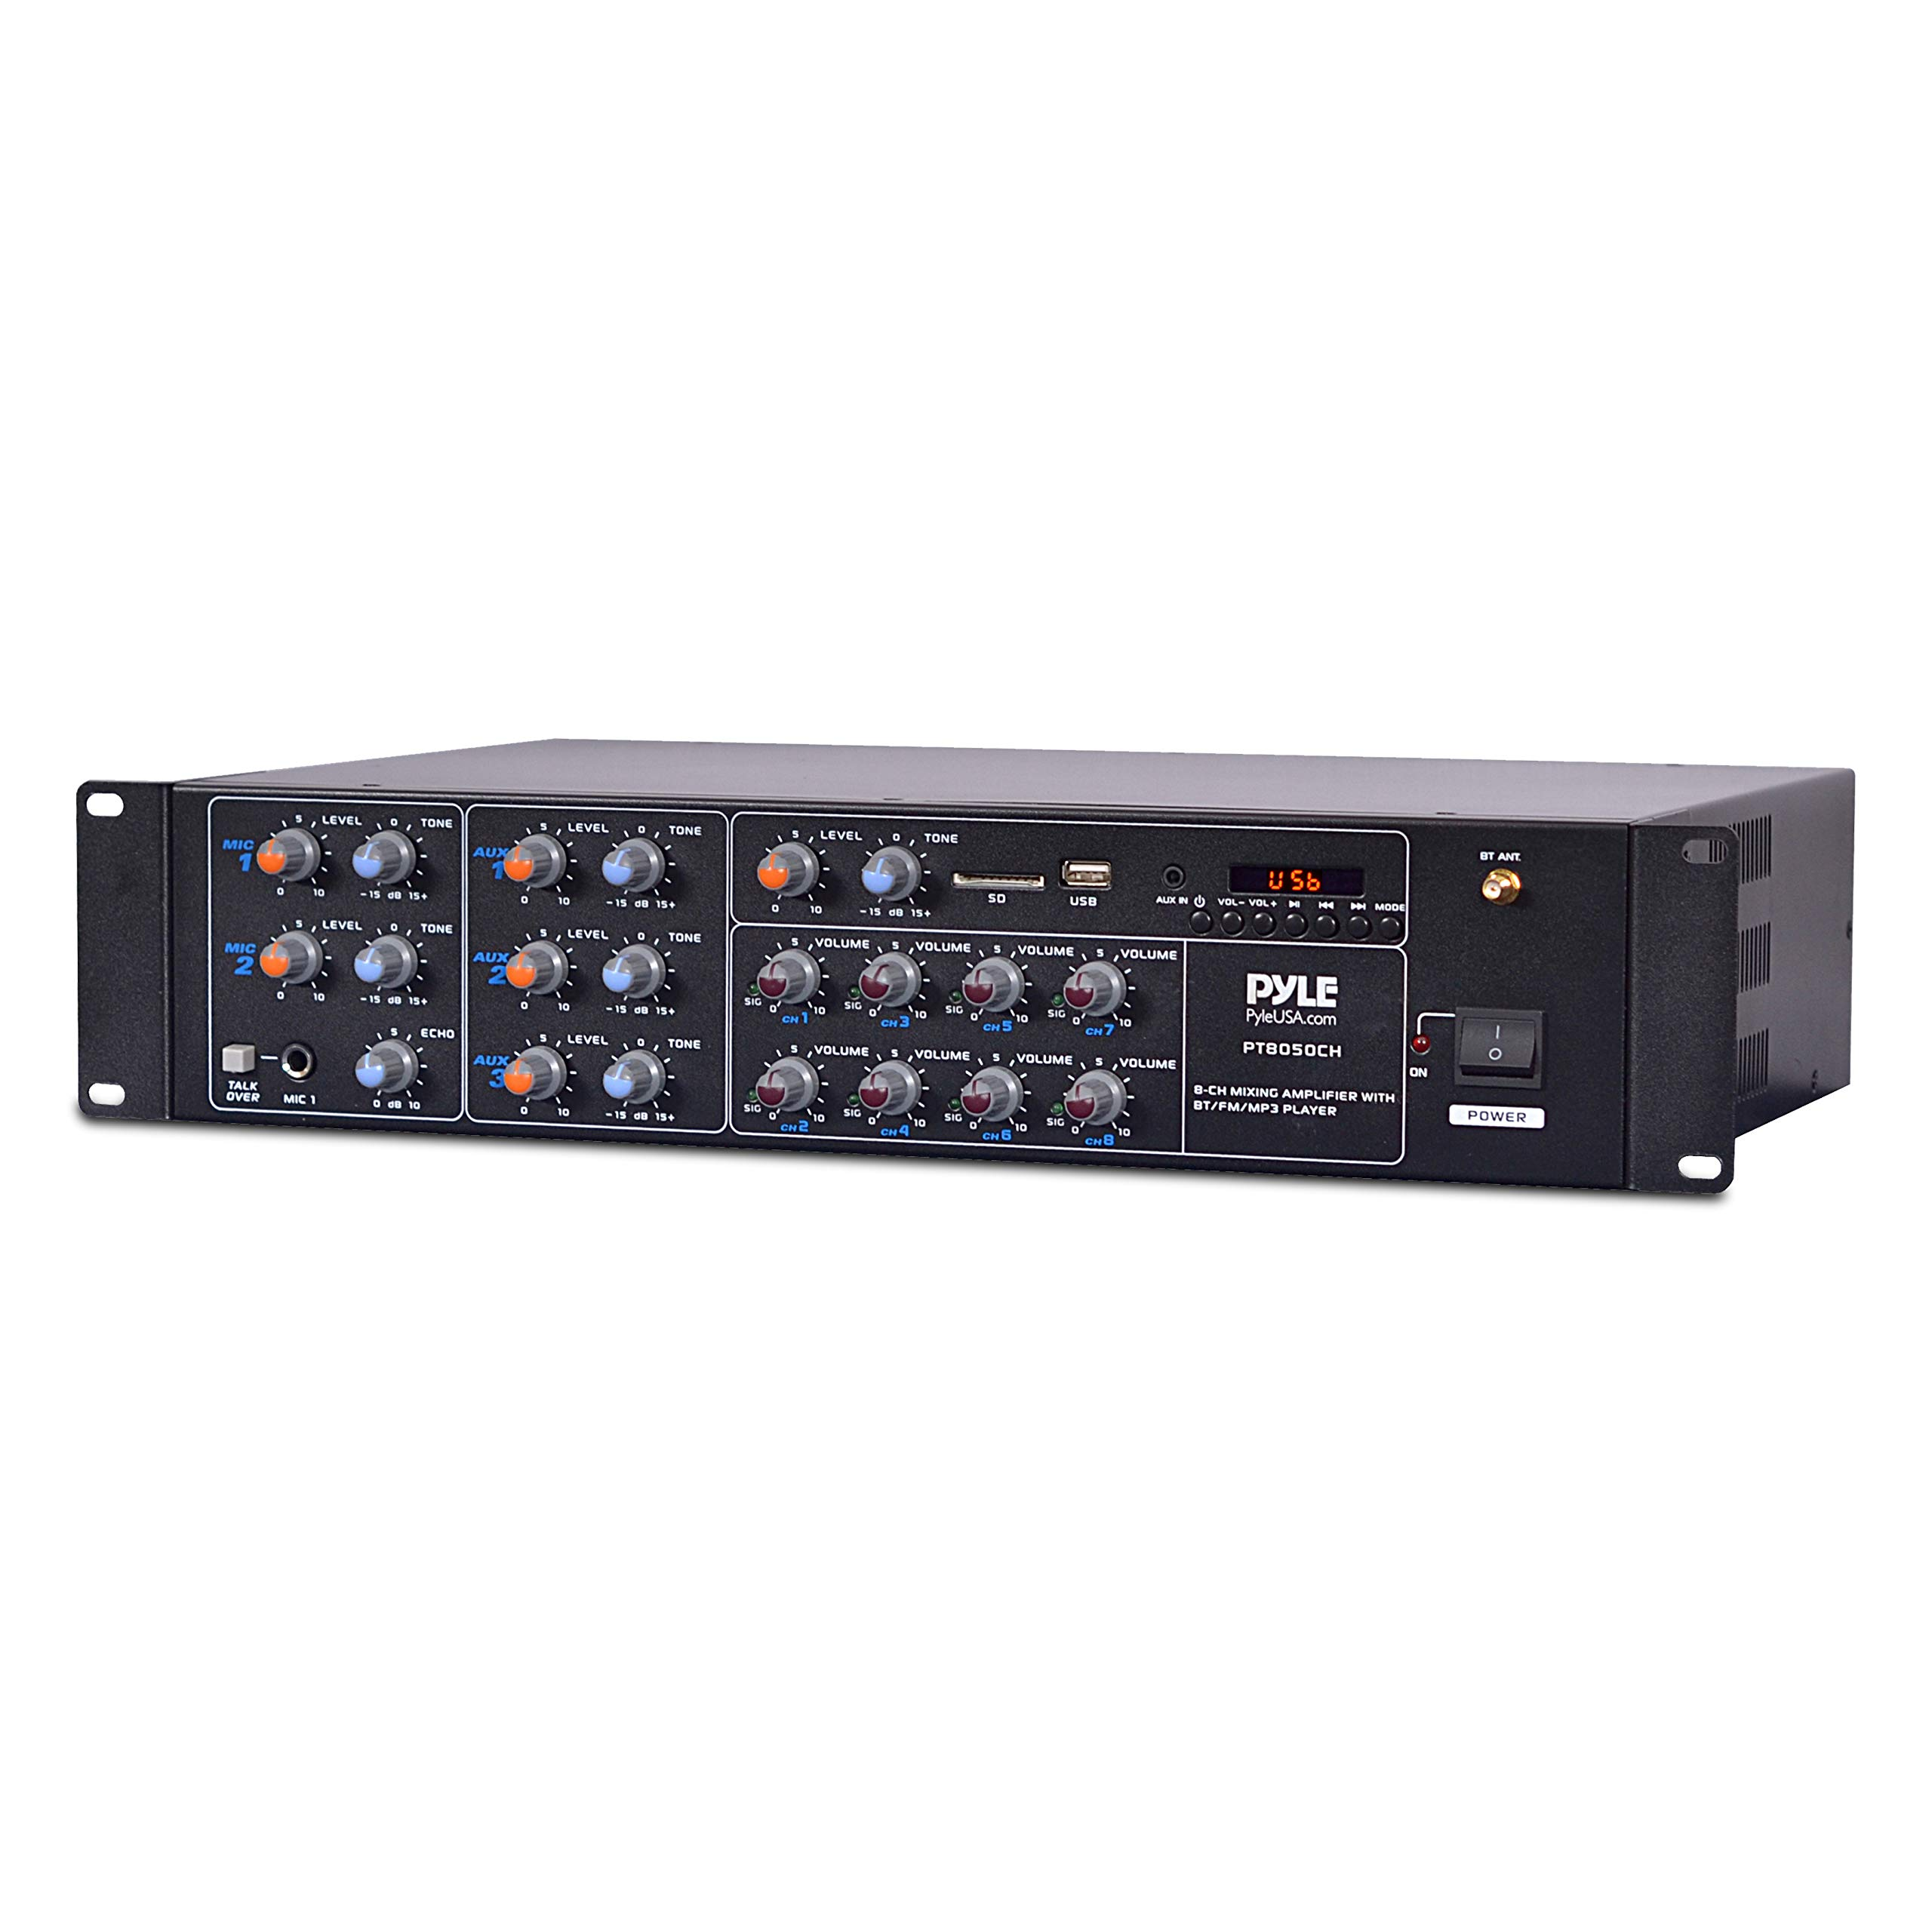 8 Outlet Power Sequencer Conditioner - 2200W Rack Mount Pro Audio Digital Power Supply Controller Regulator w/ Voltage Readout, Surge Protector, For Home Theater, Stage / Studio Use - Pyle PS1200 by Pyle (Image #3)